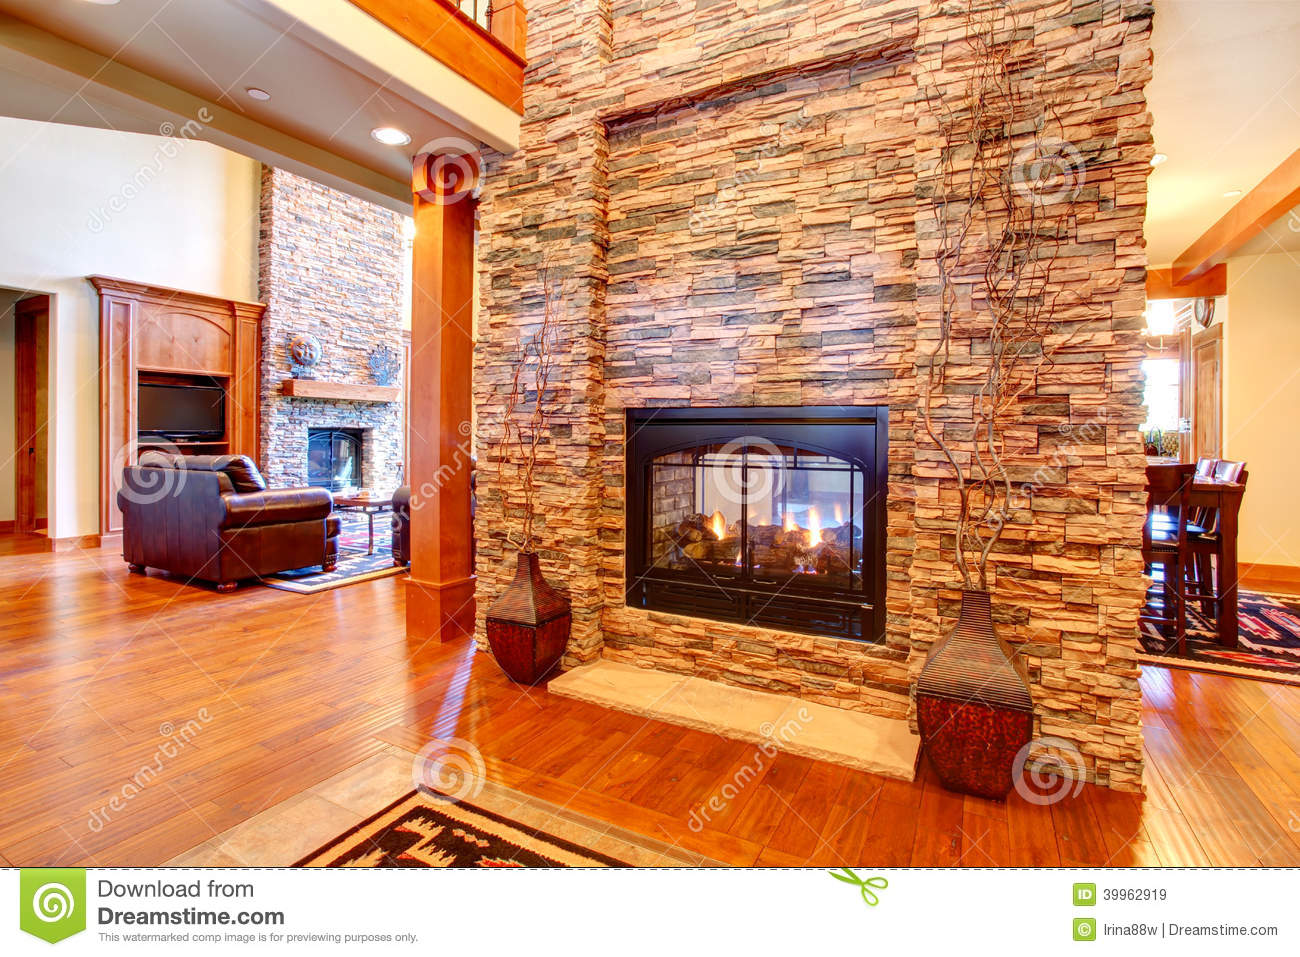 House On A Slope How To Landscape together with Images Of Bedroom Furniture Floor Plan as well Office Discussion Furniture in addition Drawing Room Interior Design Plan as well Office Interior Design 2015. on 1188 water body swimming pool section rcc slab